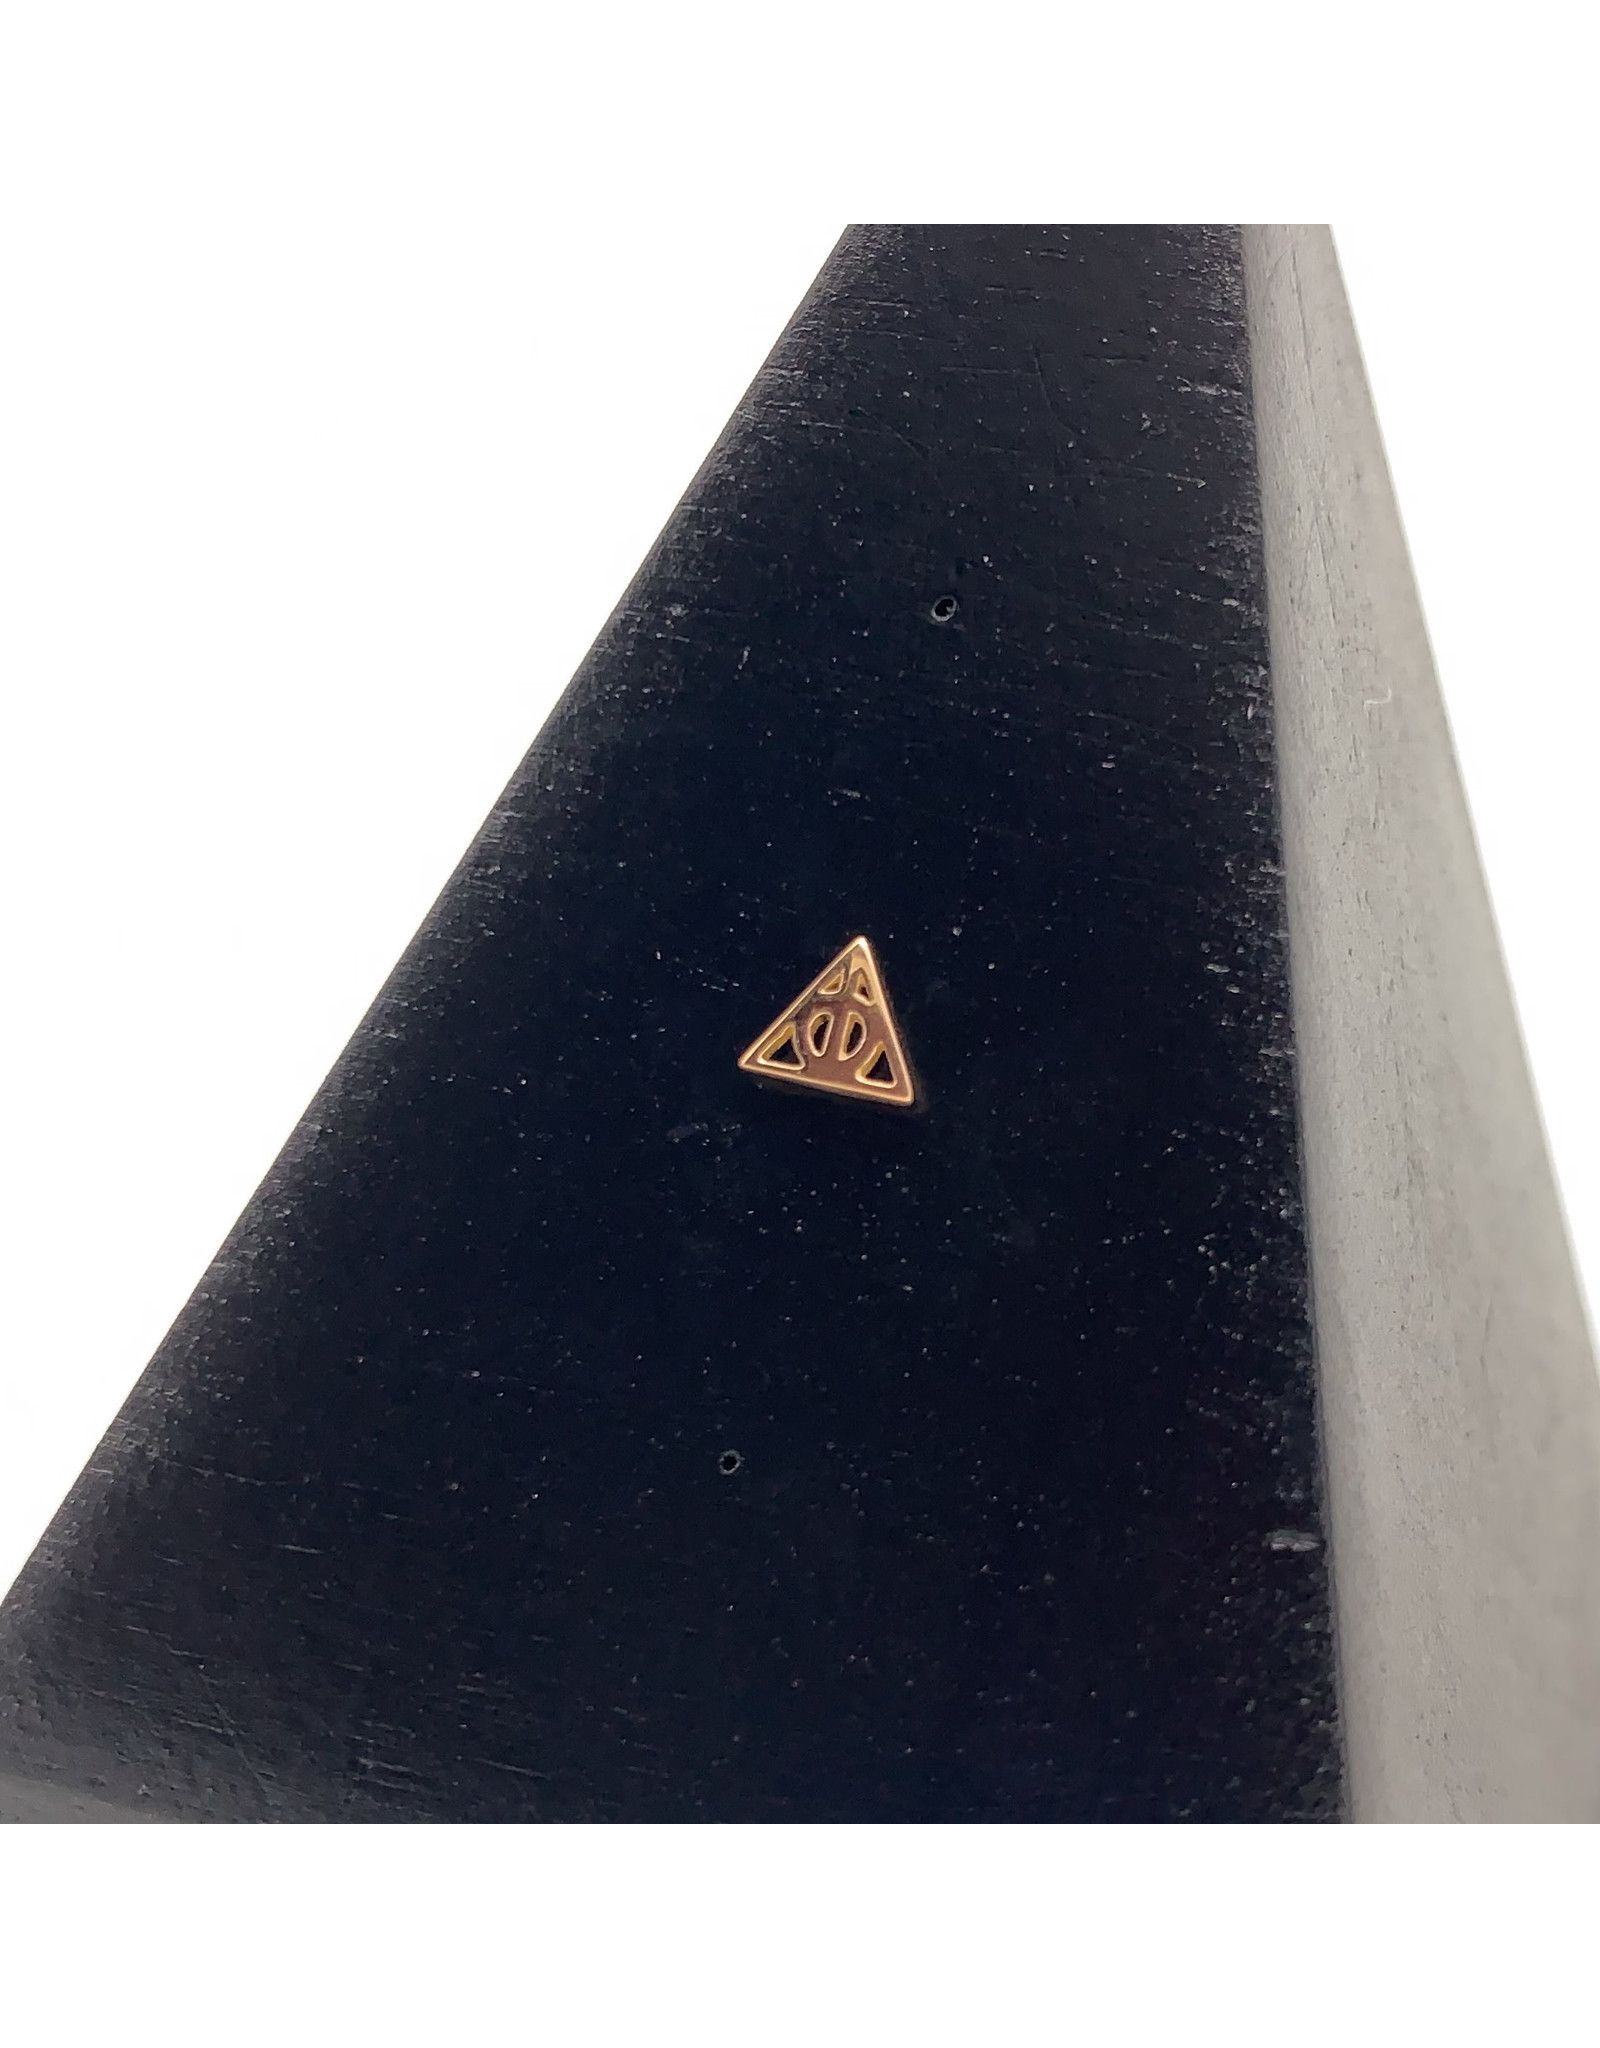 """BVLA BVLA """"Deathly Hallows"""" press-fit end"""